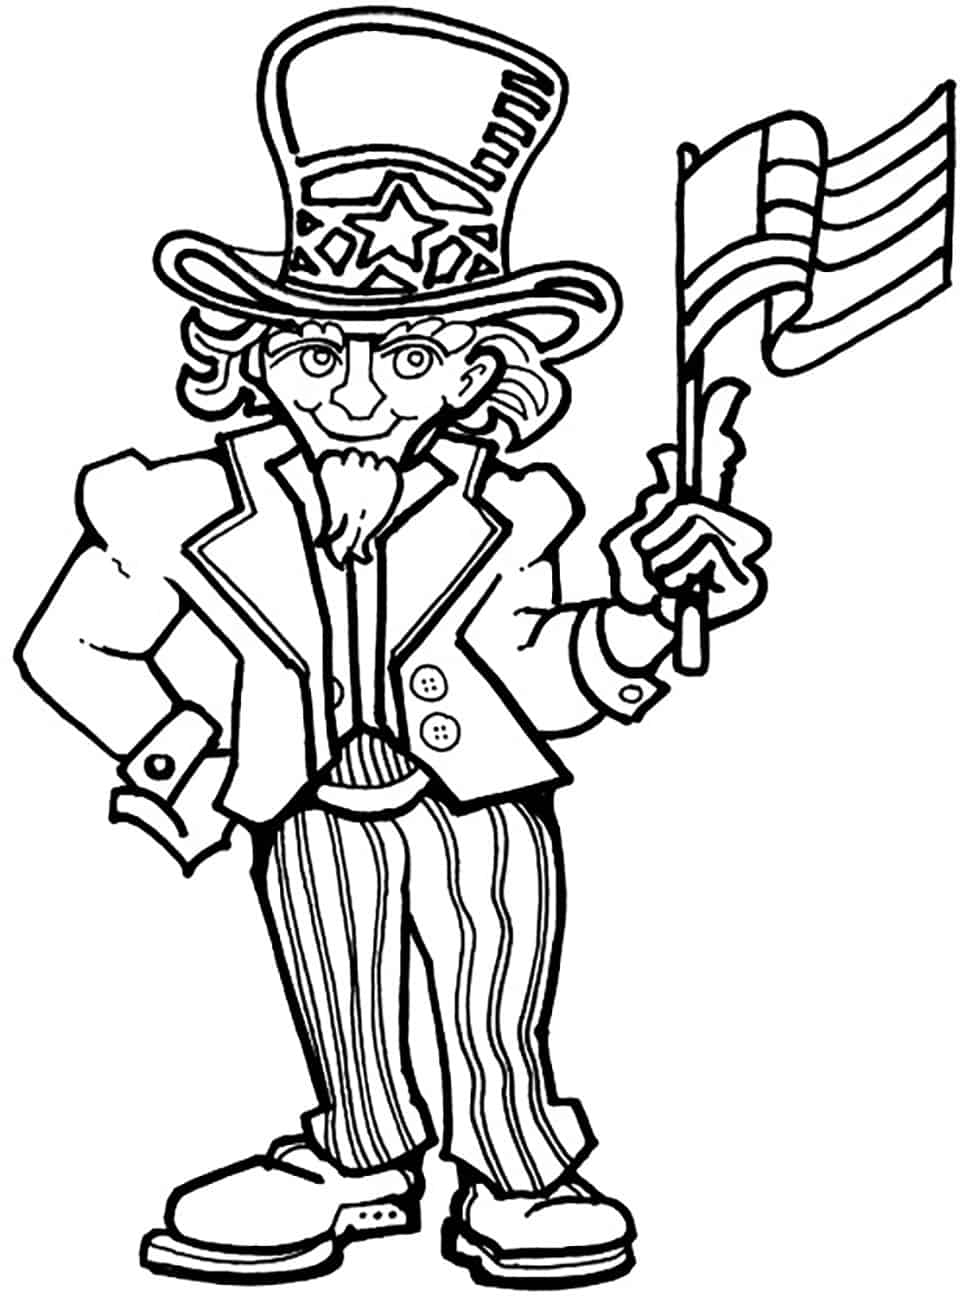 Free 4th of July Coloring Pages Tuxedo Cats and Coffee